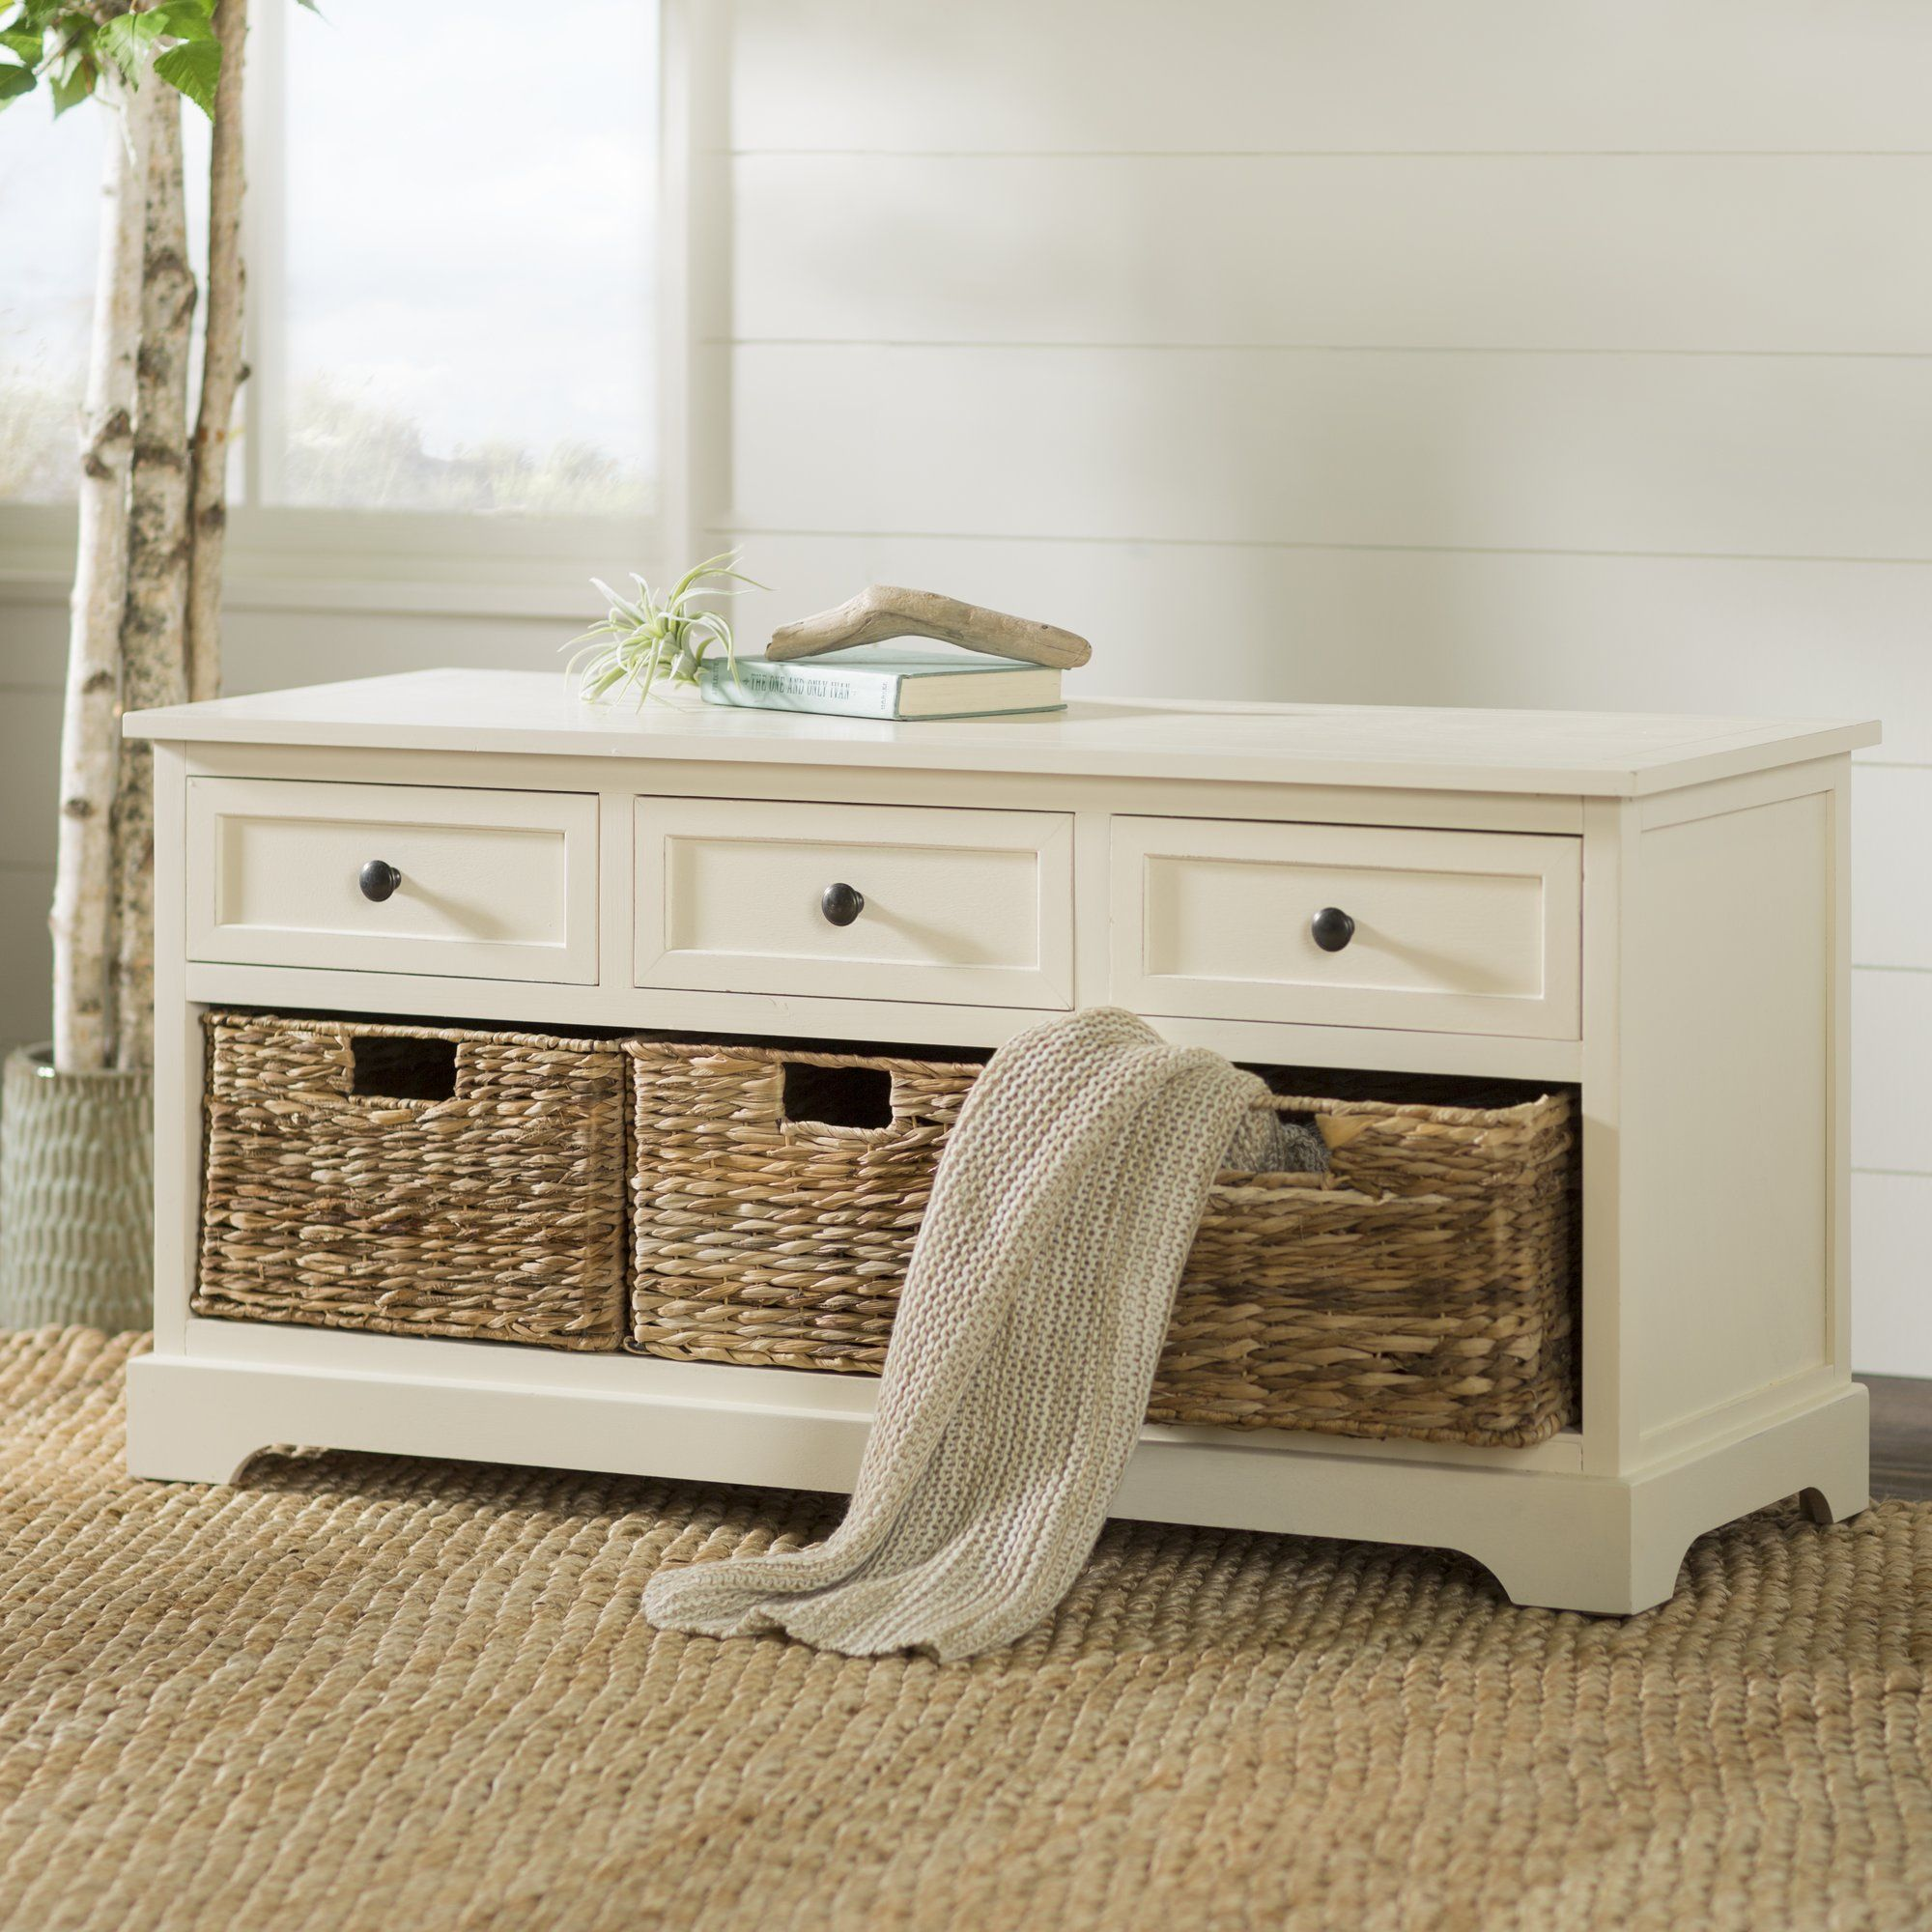 Fresh Wooden Entry Benches with Storage